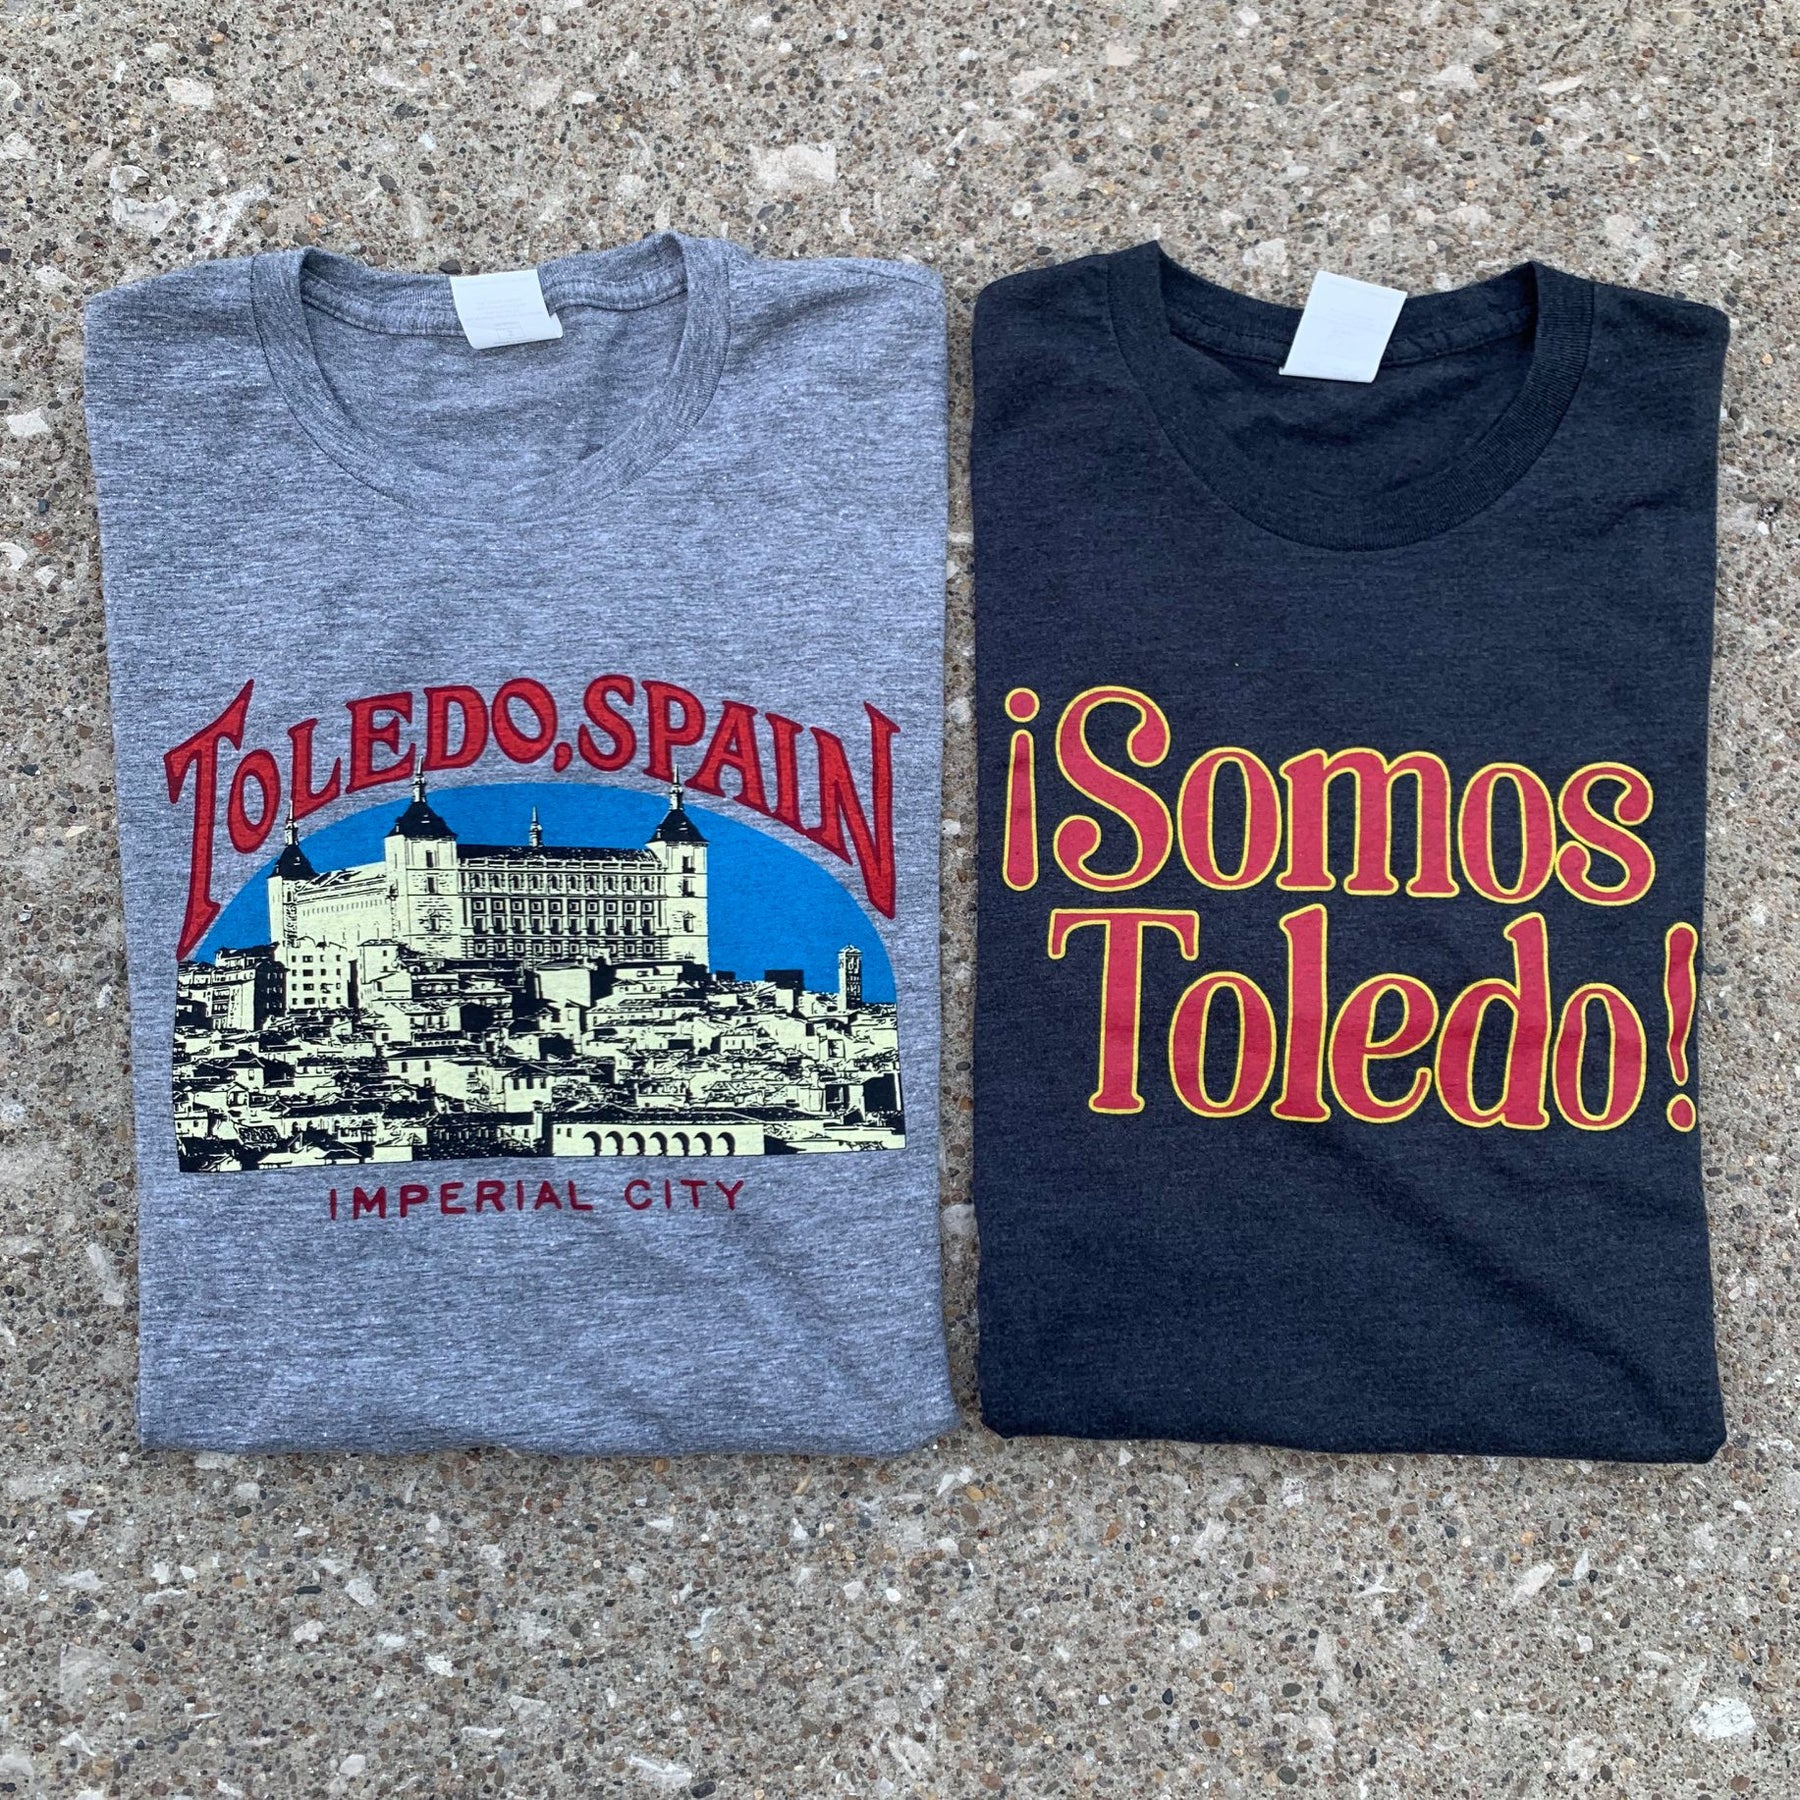 Transport yourself to Spain with our new Toledo Spain shirts!